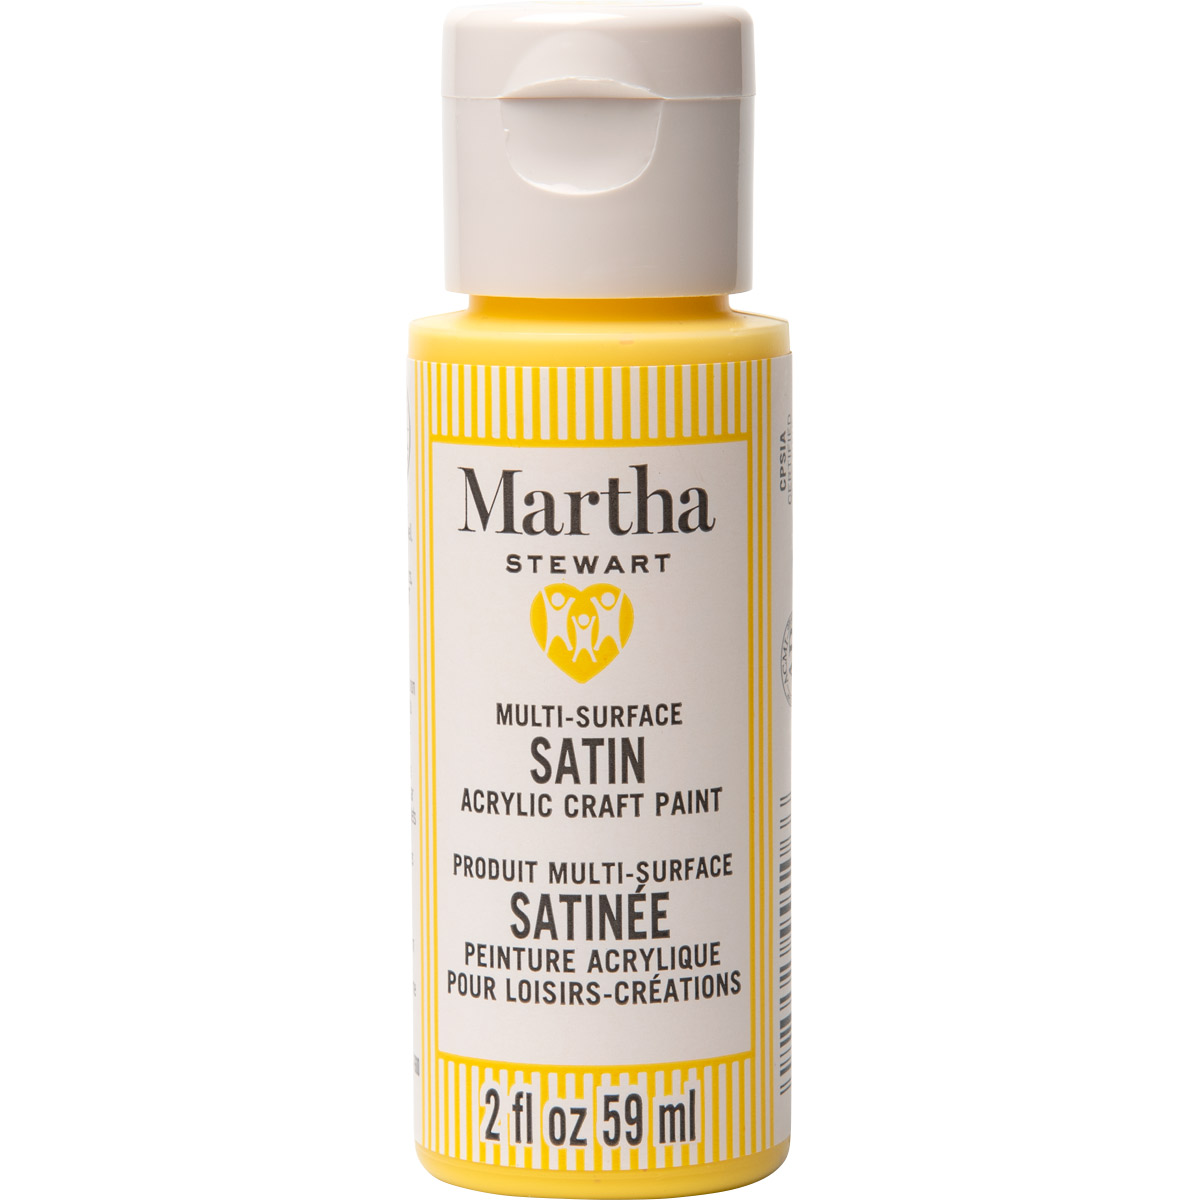 Martha Stewart ® Multi-Surface Satin Acrylic Craft Paint CPSIA - Sun Kissed, 2 oz. - 99106